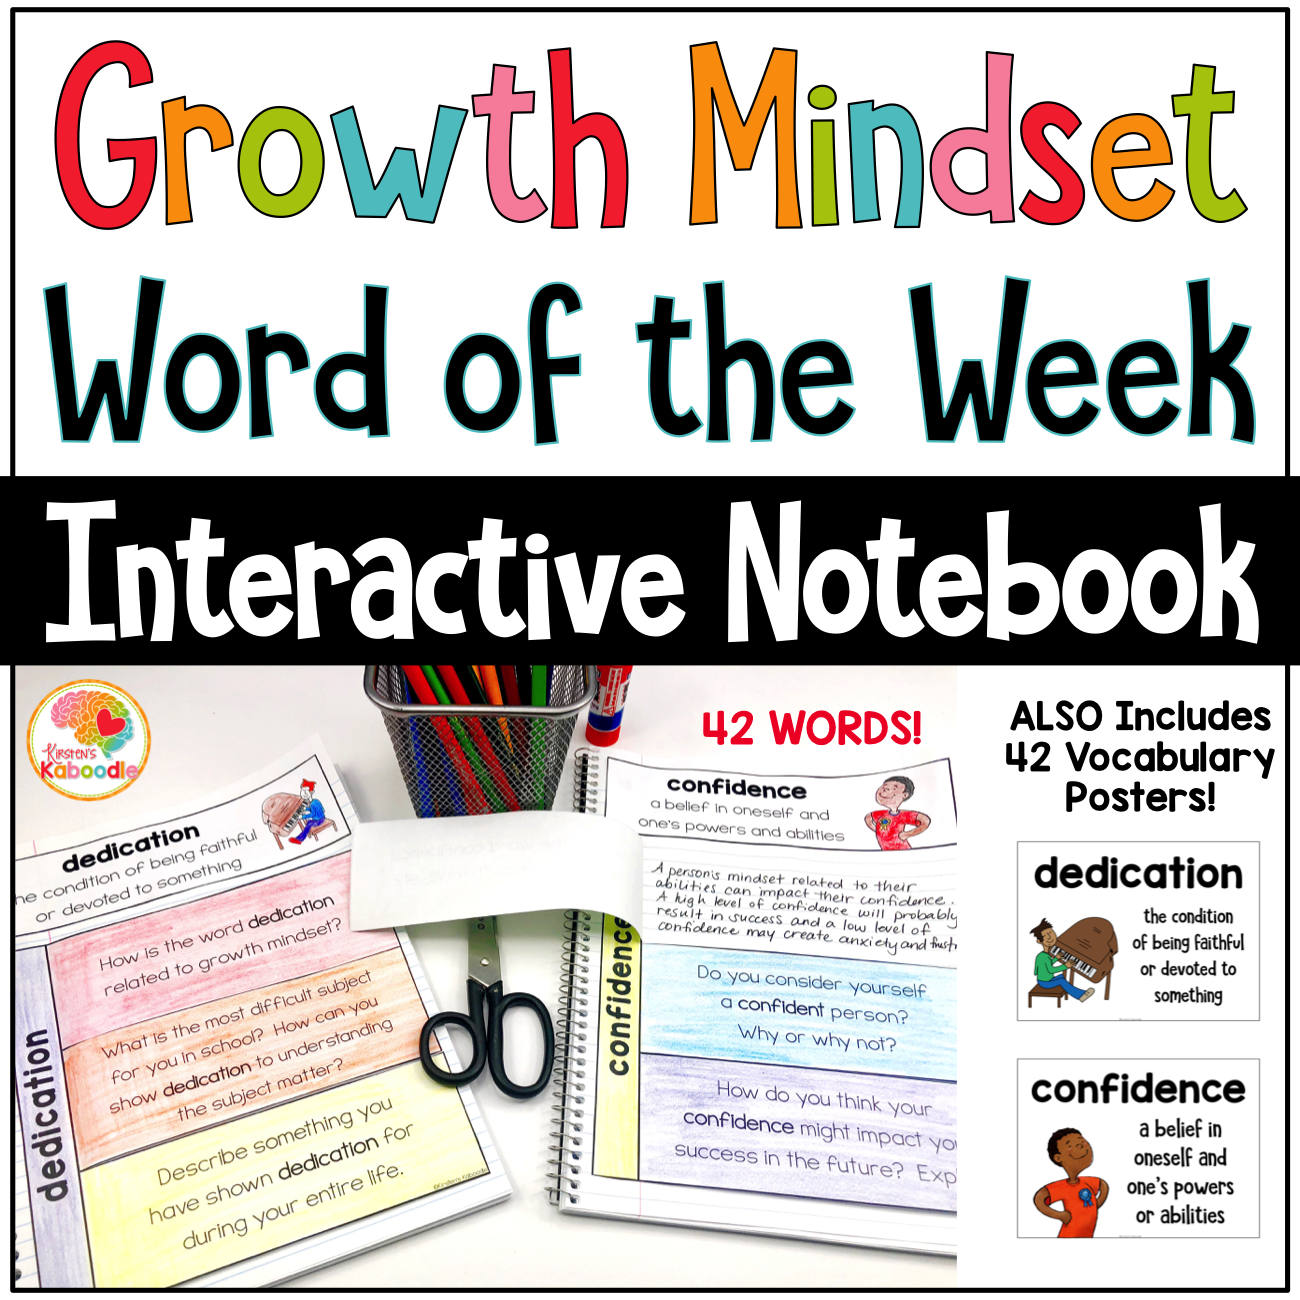 Growth Mindset Word of the Week: Interactive Notebook and Posters